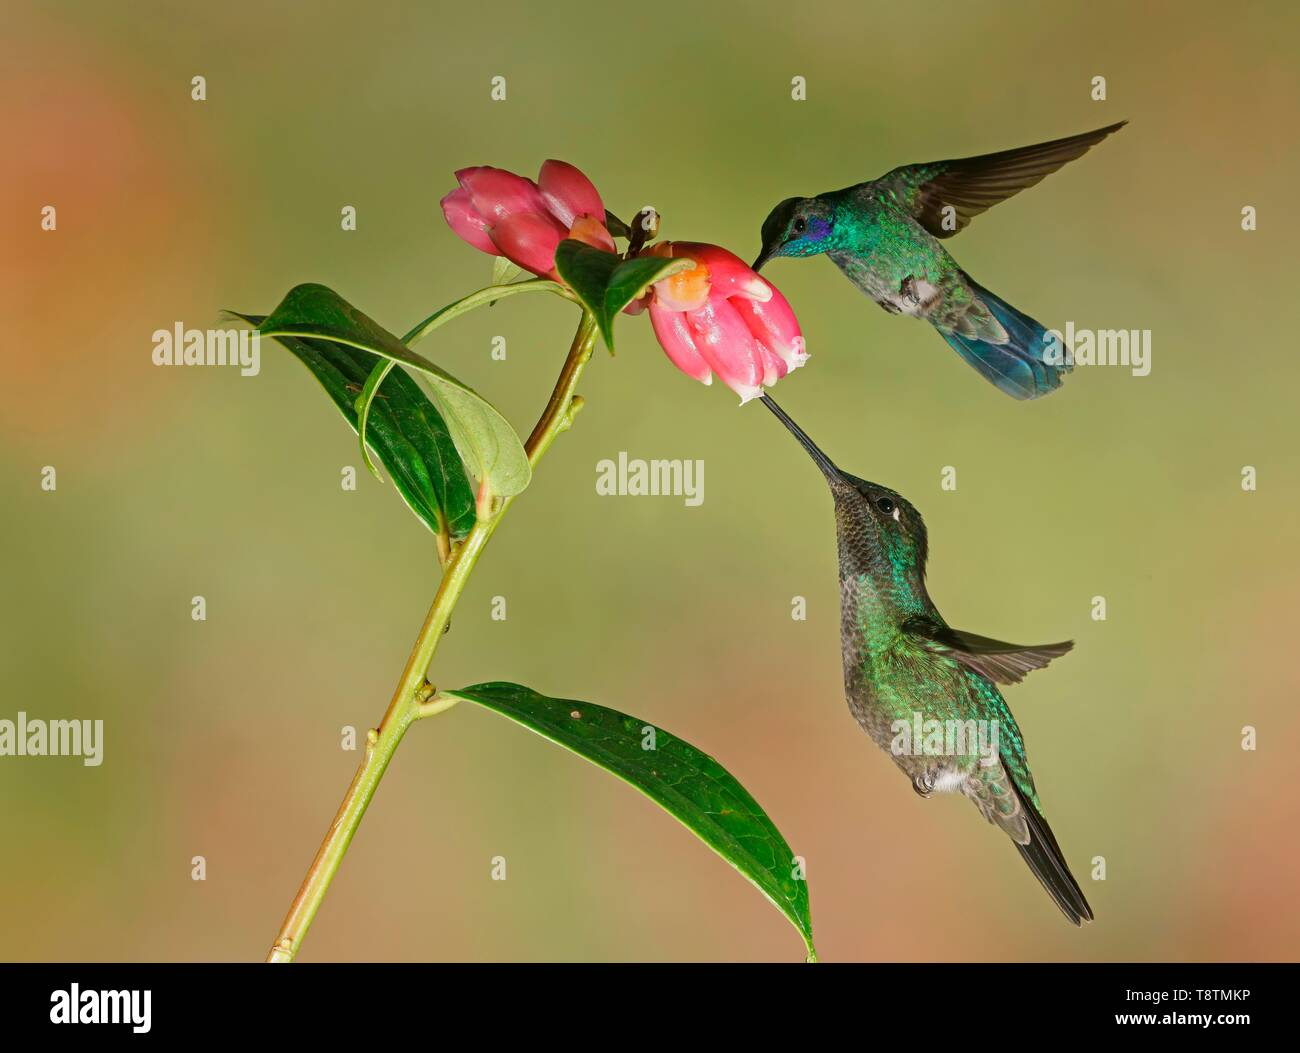 Mexican violetear (Colibri thalassinus) and Fiery-throated hummingbird (Panterpe insignis) in flight, drink nectar on pink flower, Costa Rica - Stock Image